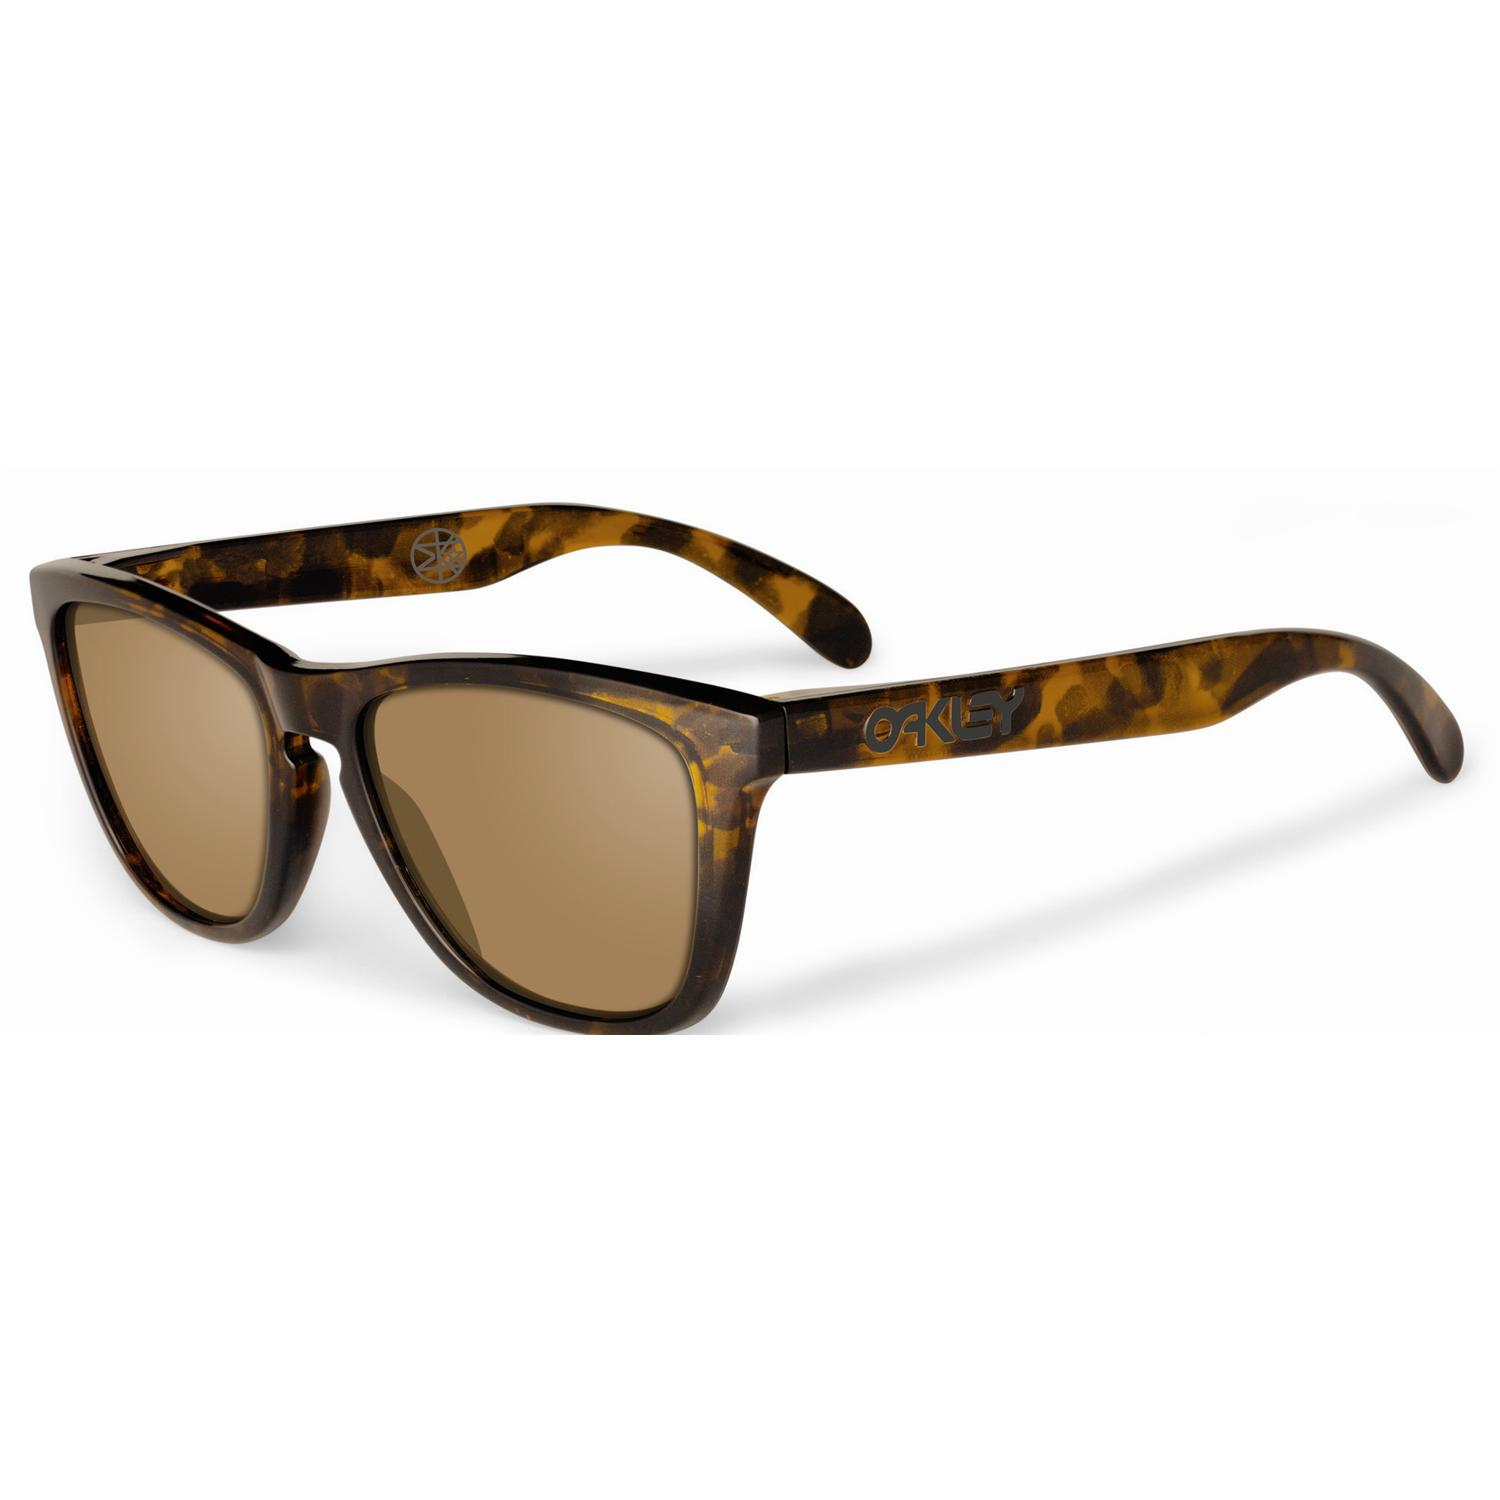 oakley frogskins sunglasses eric  oakley frogskins sunglasses eric koston brown tortoise